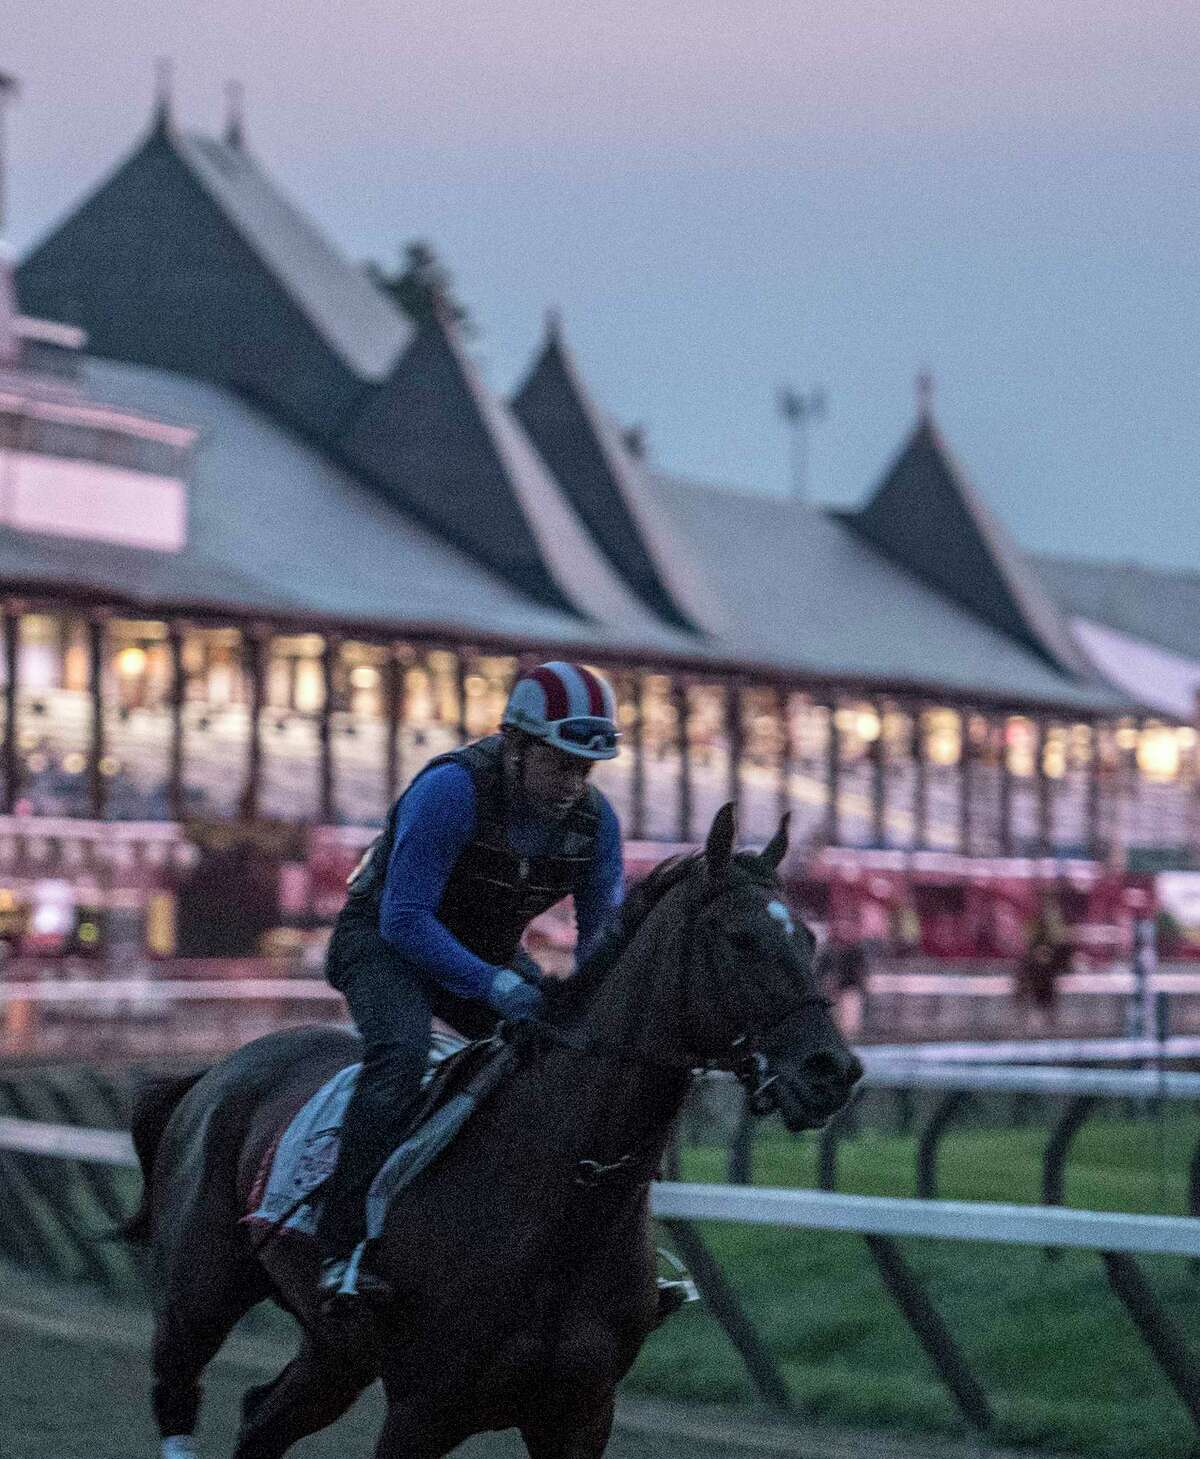 Travers Stakes entrant Wonder Gadot gallops on the main track as the sun rises at the historic Saratoga Race Course clubhouse Friday Aug. 24, 2018 in Saratoga Springs, N.Y. (Skip Dickstein/Times Union)